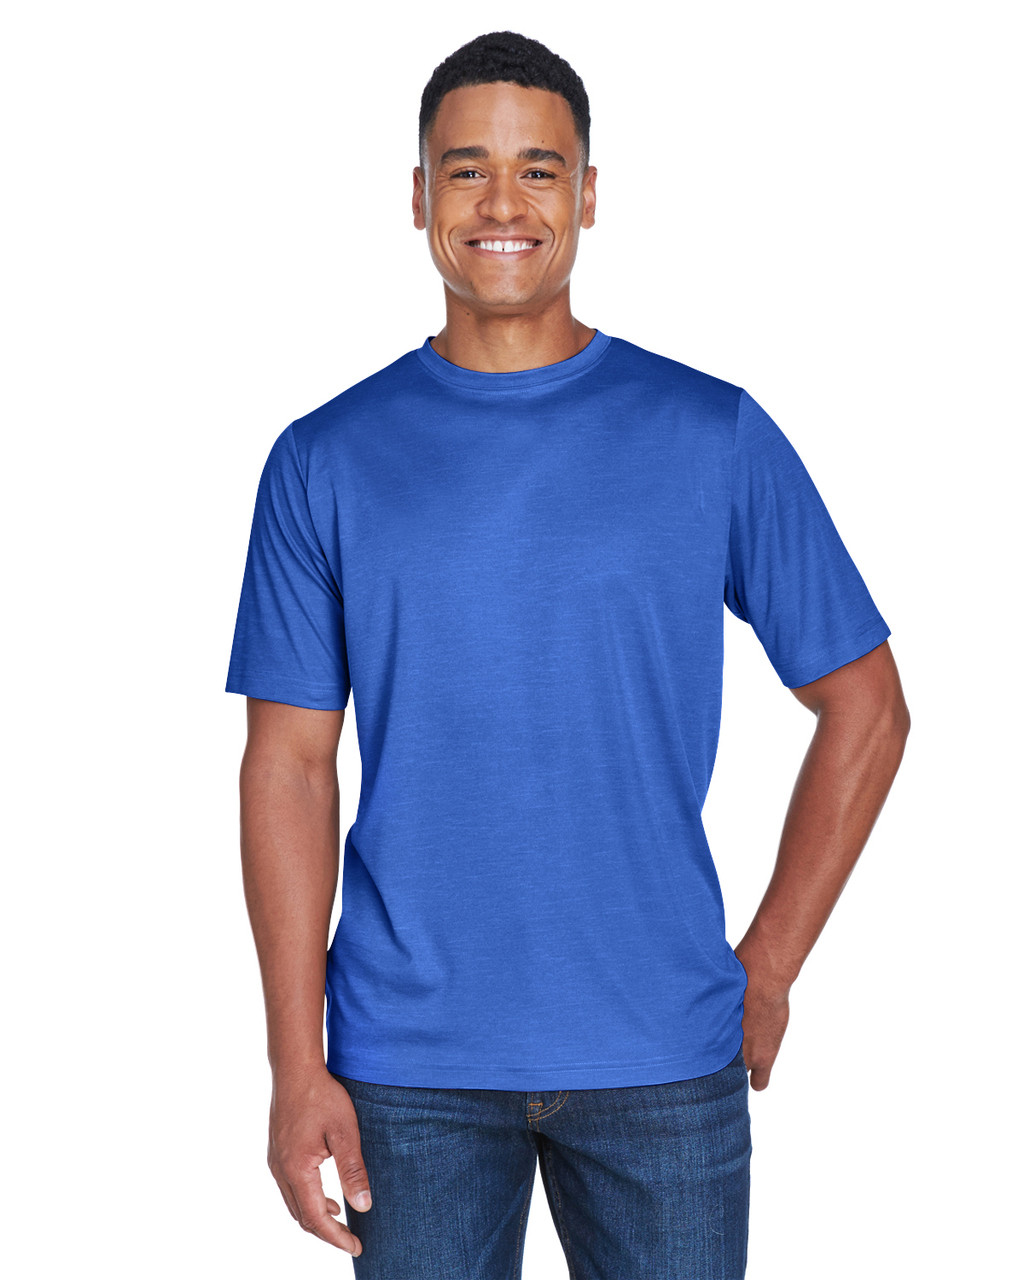 TT11H Team 365 Men's Sonic Heather Performance T-Shirt